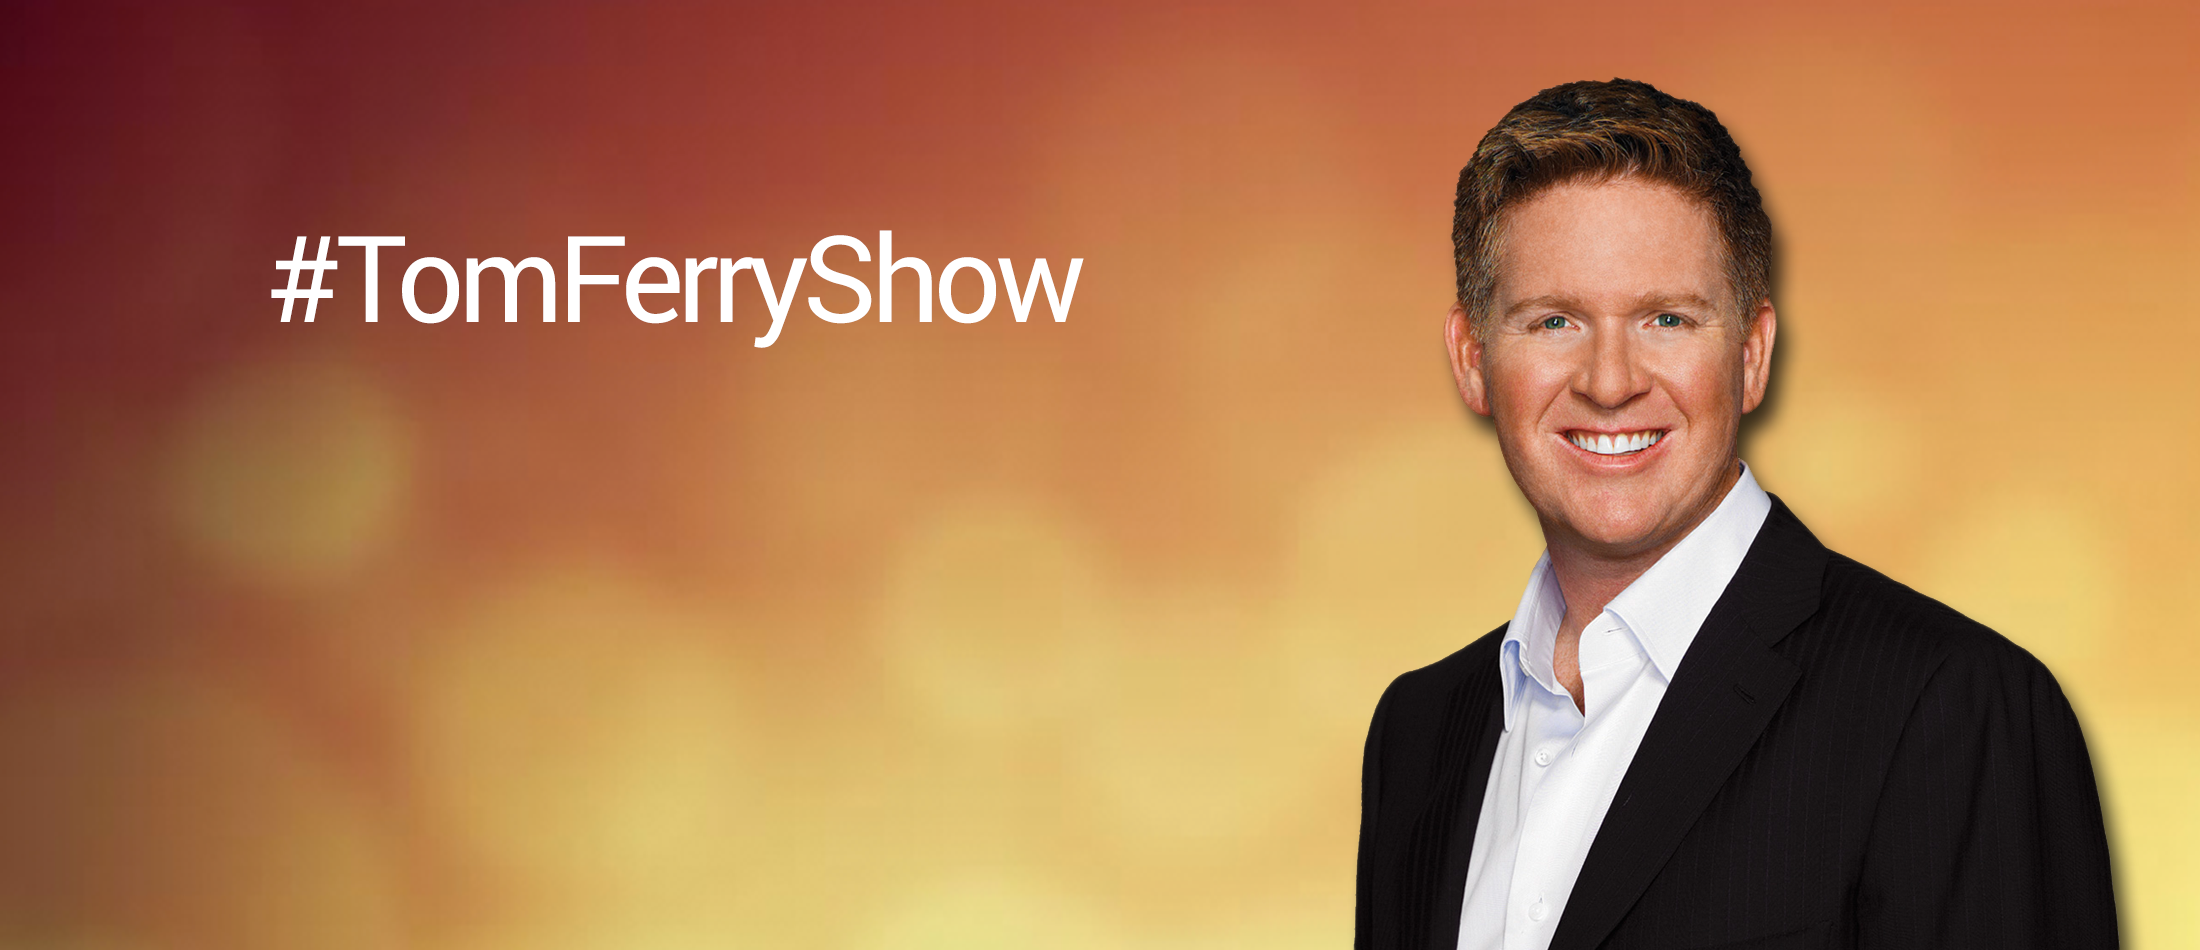 Zurple Spotlight: The Tom Ferry Show